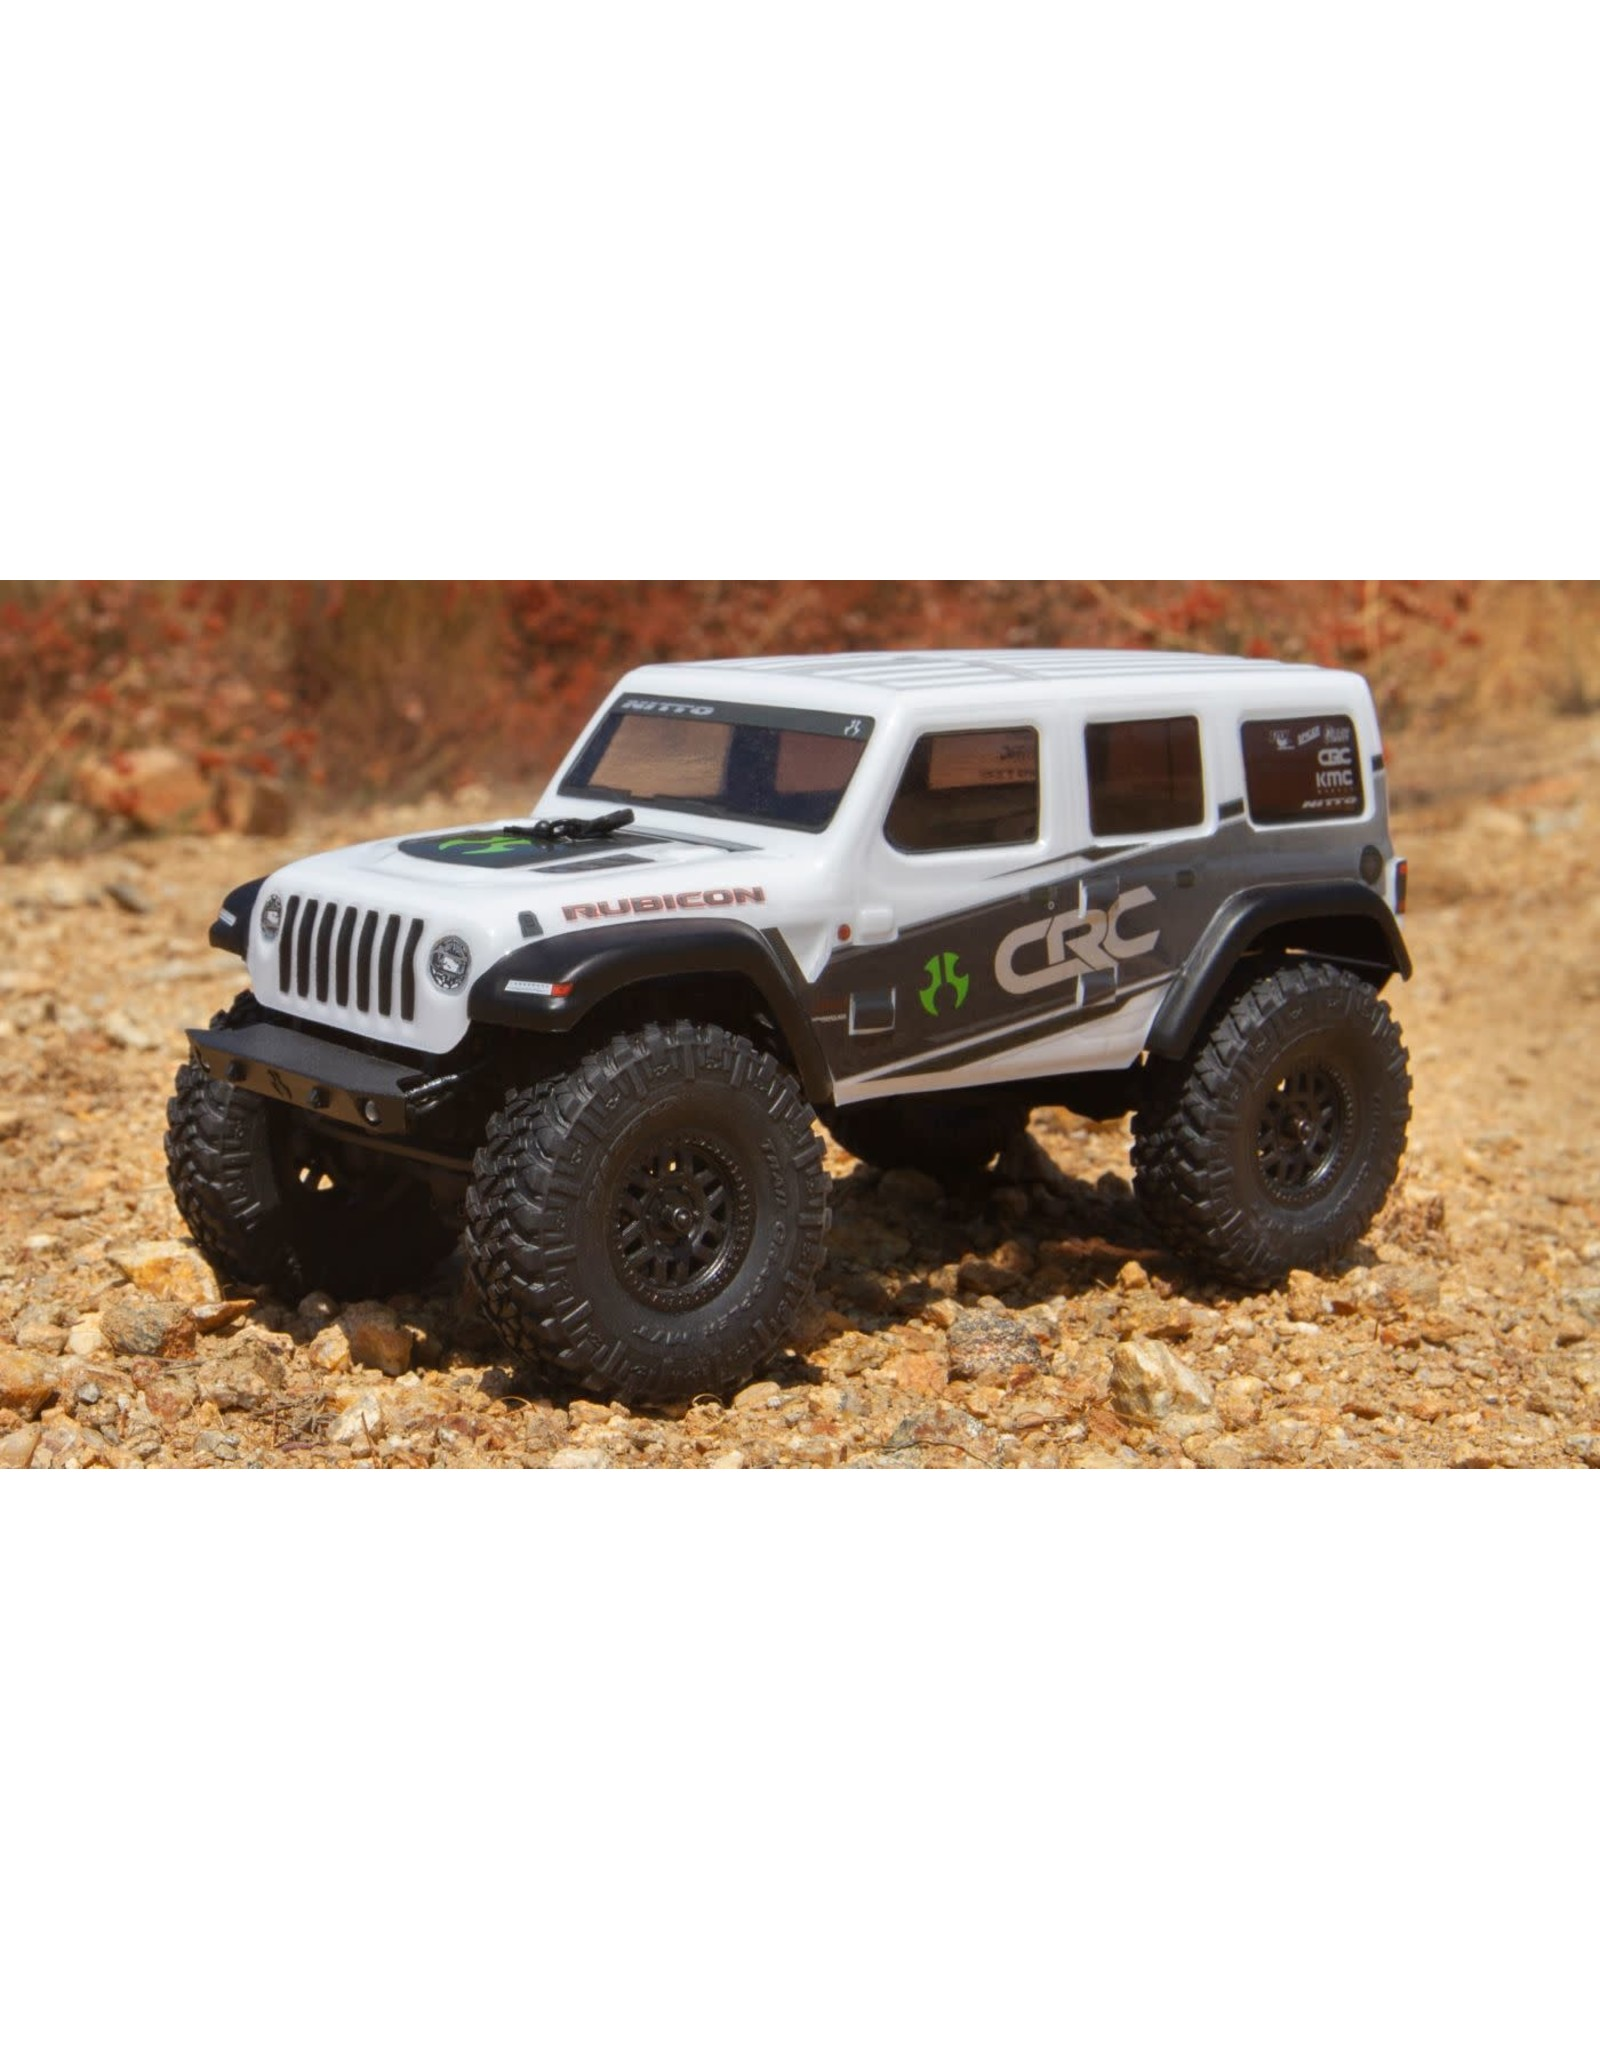 Axial Axial 2019 Jeep Jlu Crc RTR White AXI00002t1